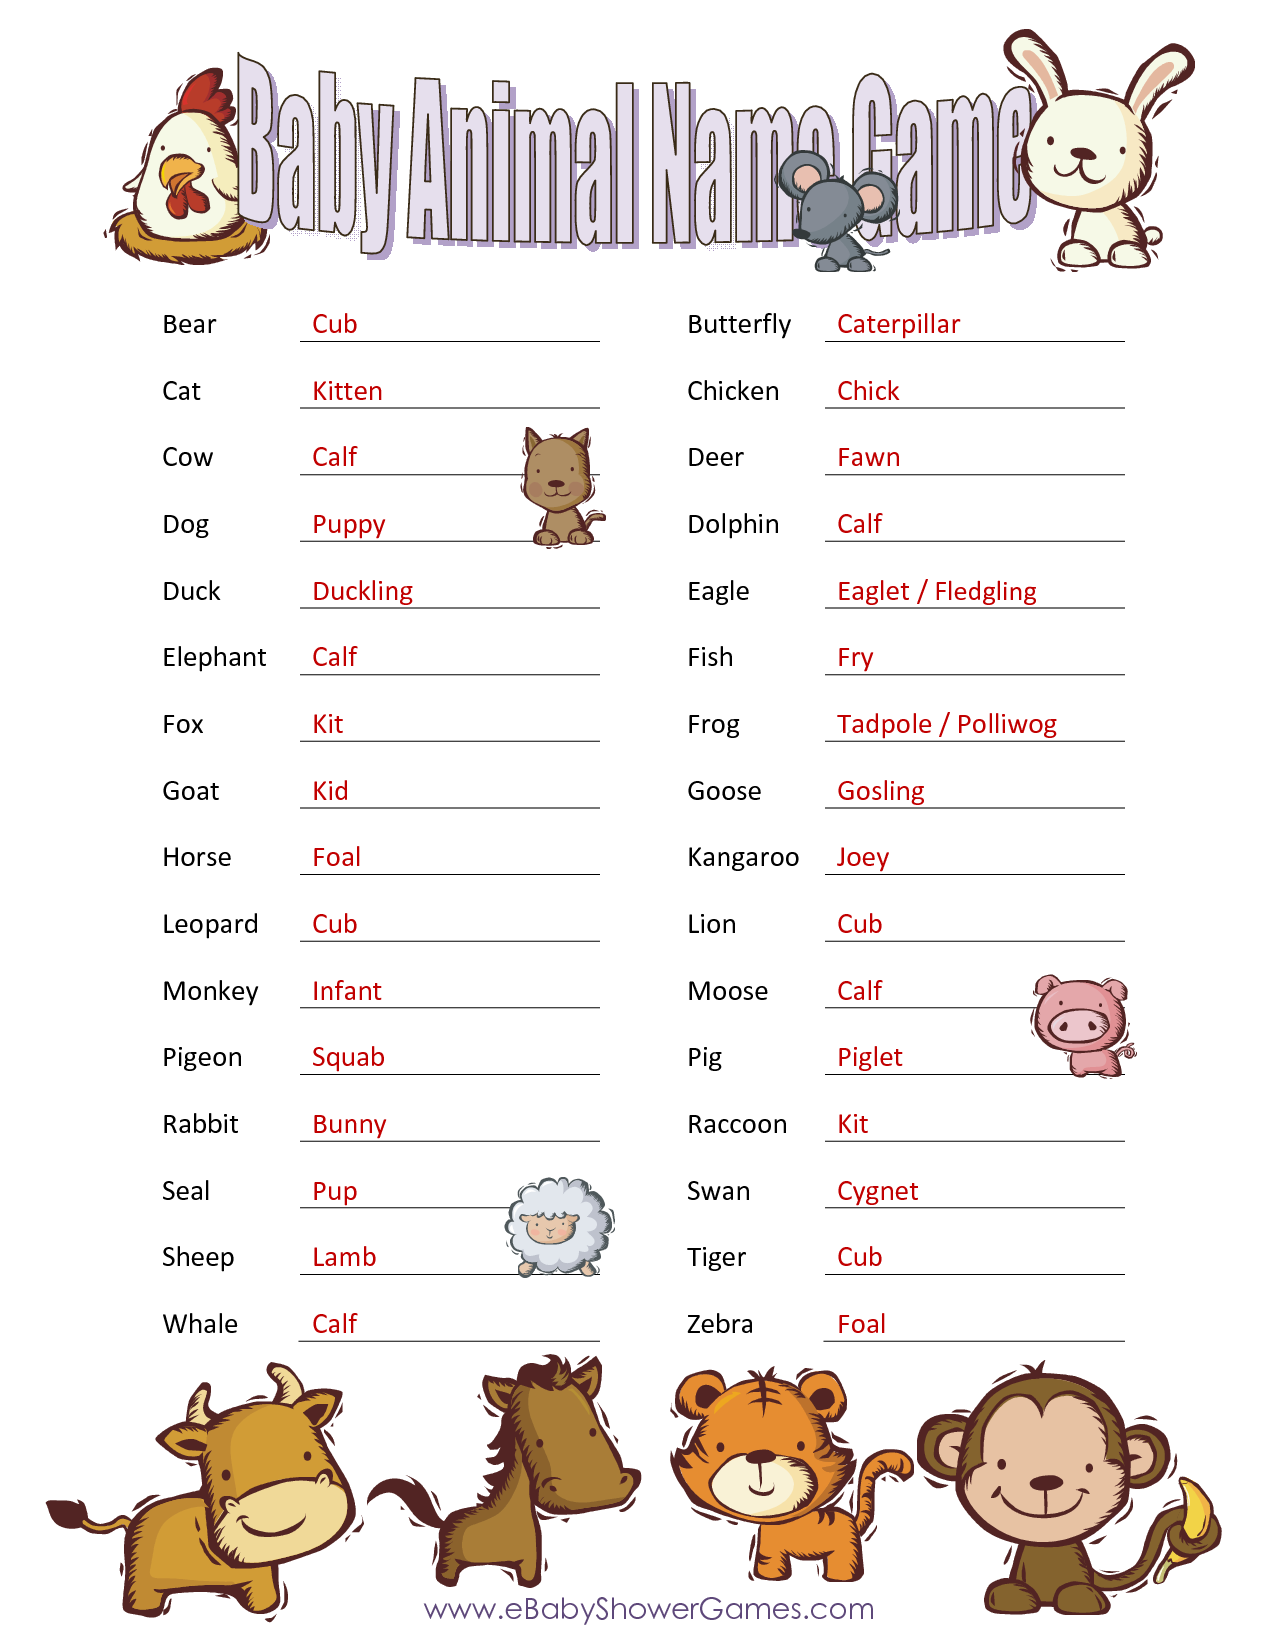 What Makes The Perfect Baby Shower His Or Her Print Awareness By Snuggling Up